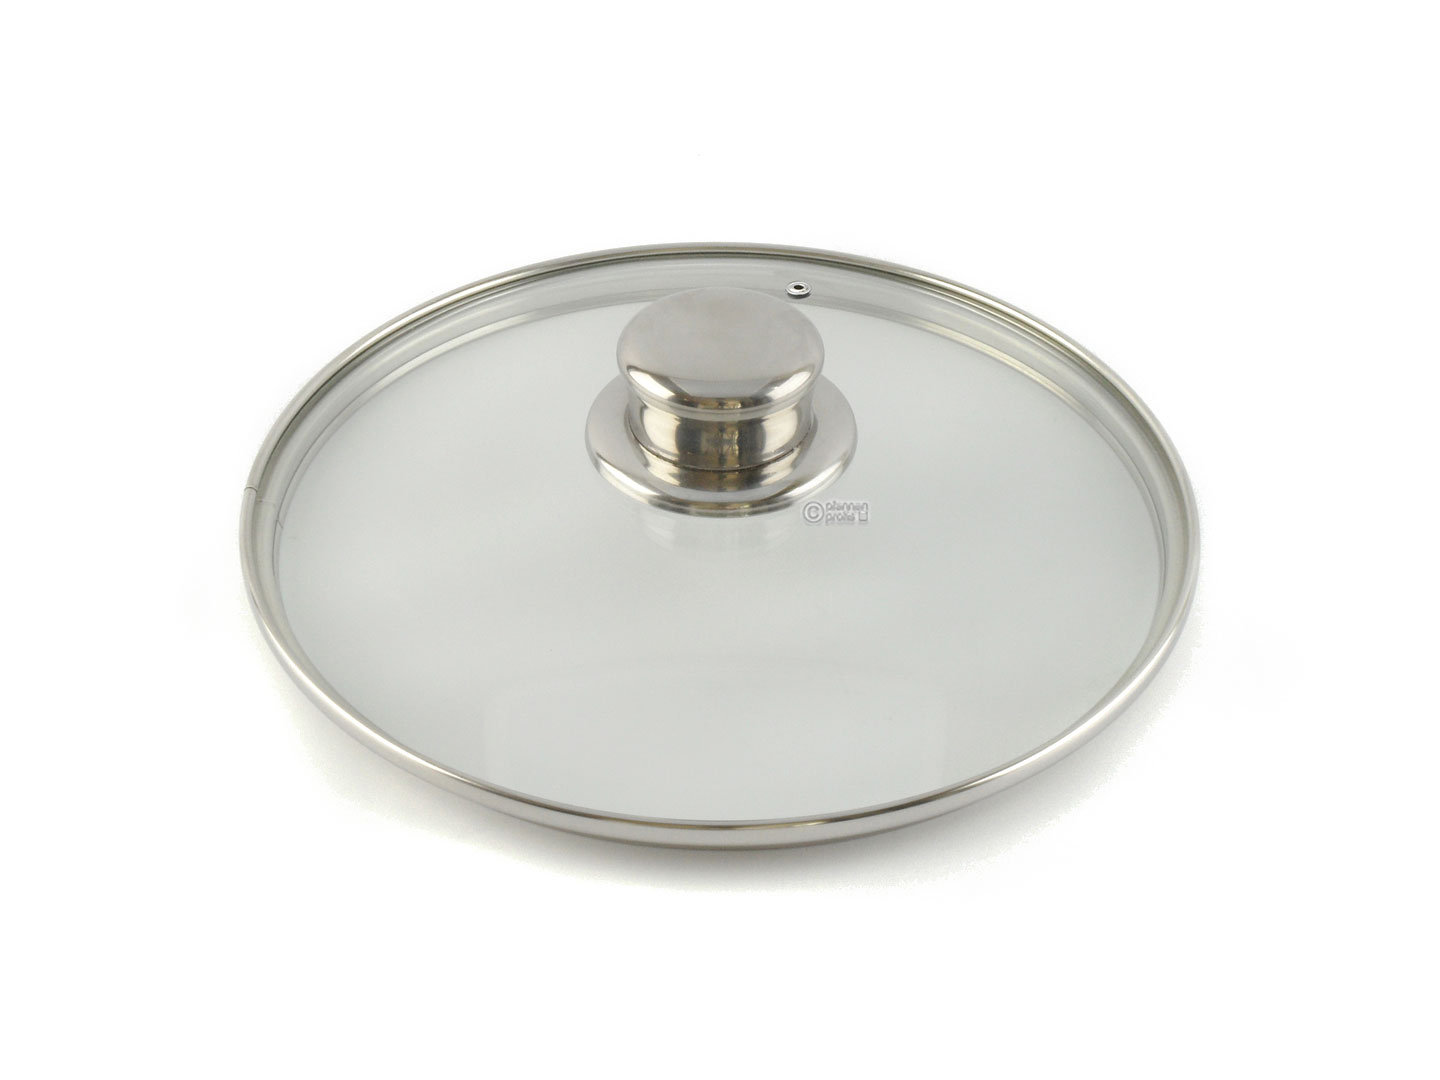 BEKA glass lid CRISTAL 20 cm ovenproof up to 180°C